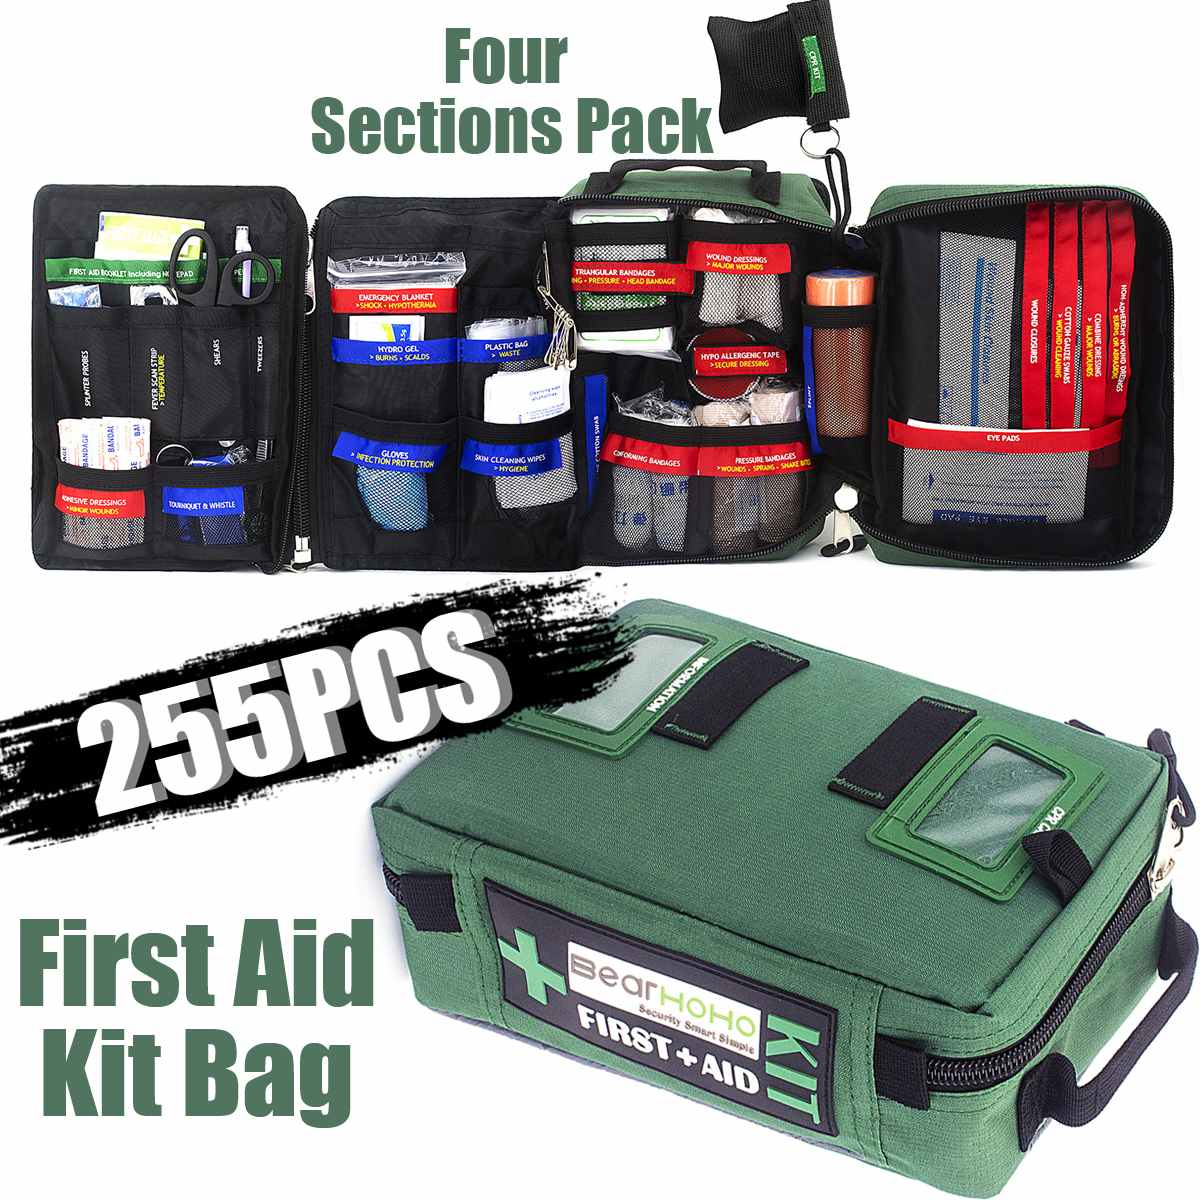 255Pcs Handy First Aid Kit Bag 165-Piece Lightweight Emergency Medical Rescue Outdoors Car Luggage School Hiking Survival Kits